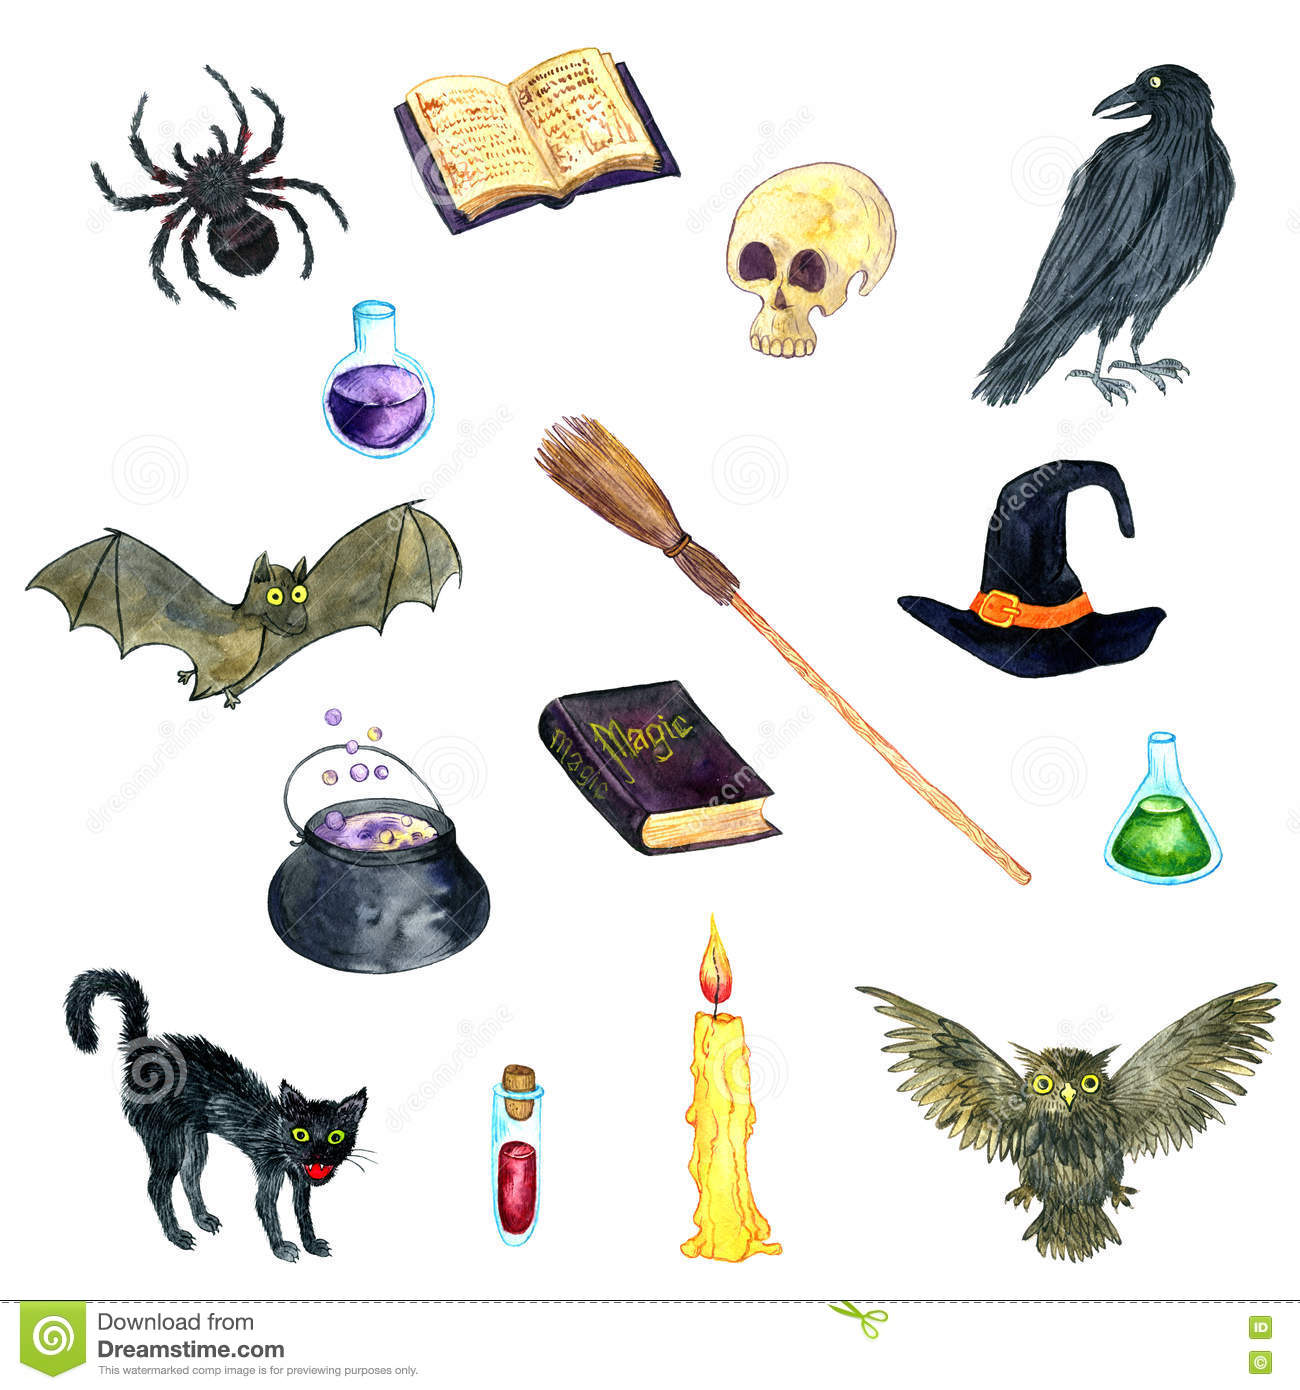 Watercolor witch symbols stock illustration  Illustration of